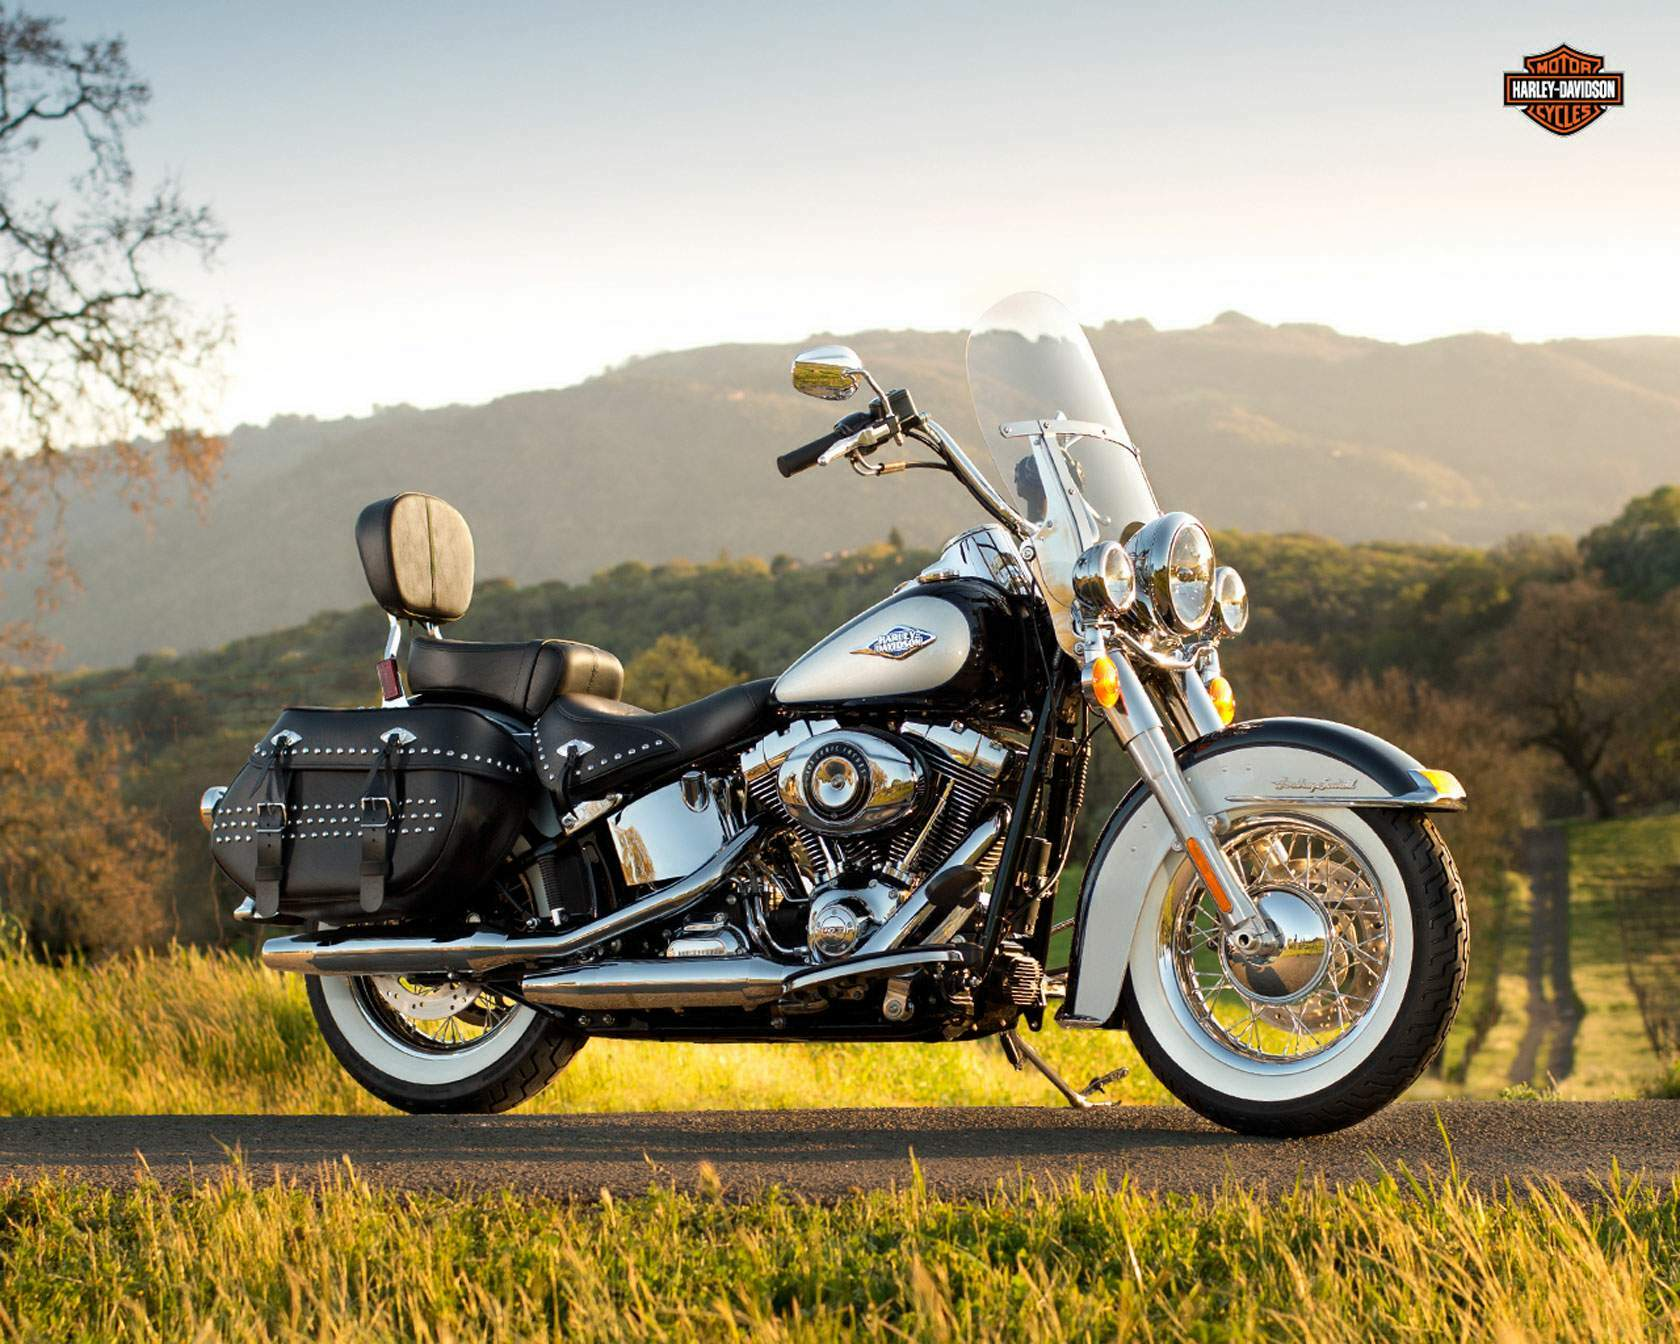 2001 Harley-Davidson Heritage Softail Classic Injection #9